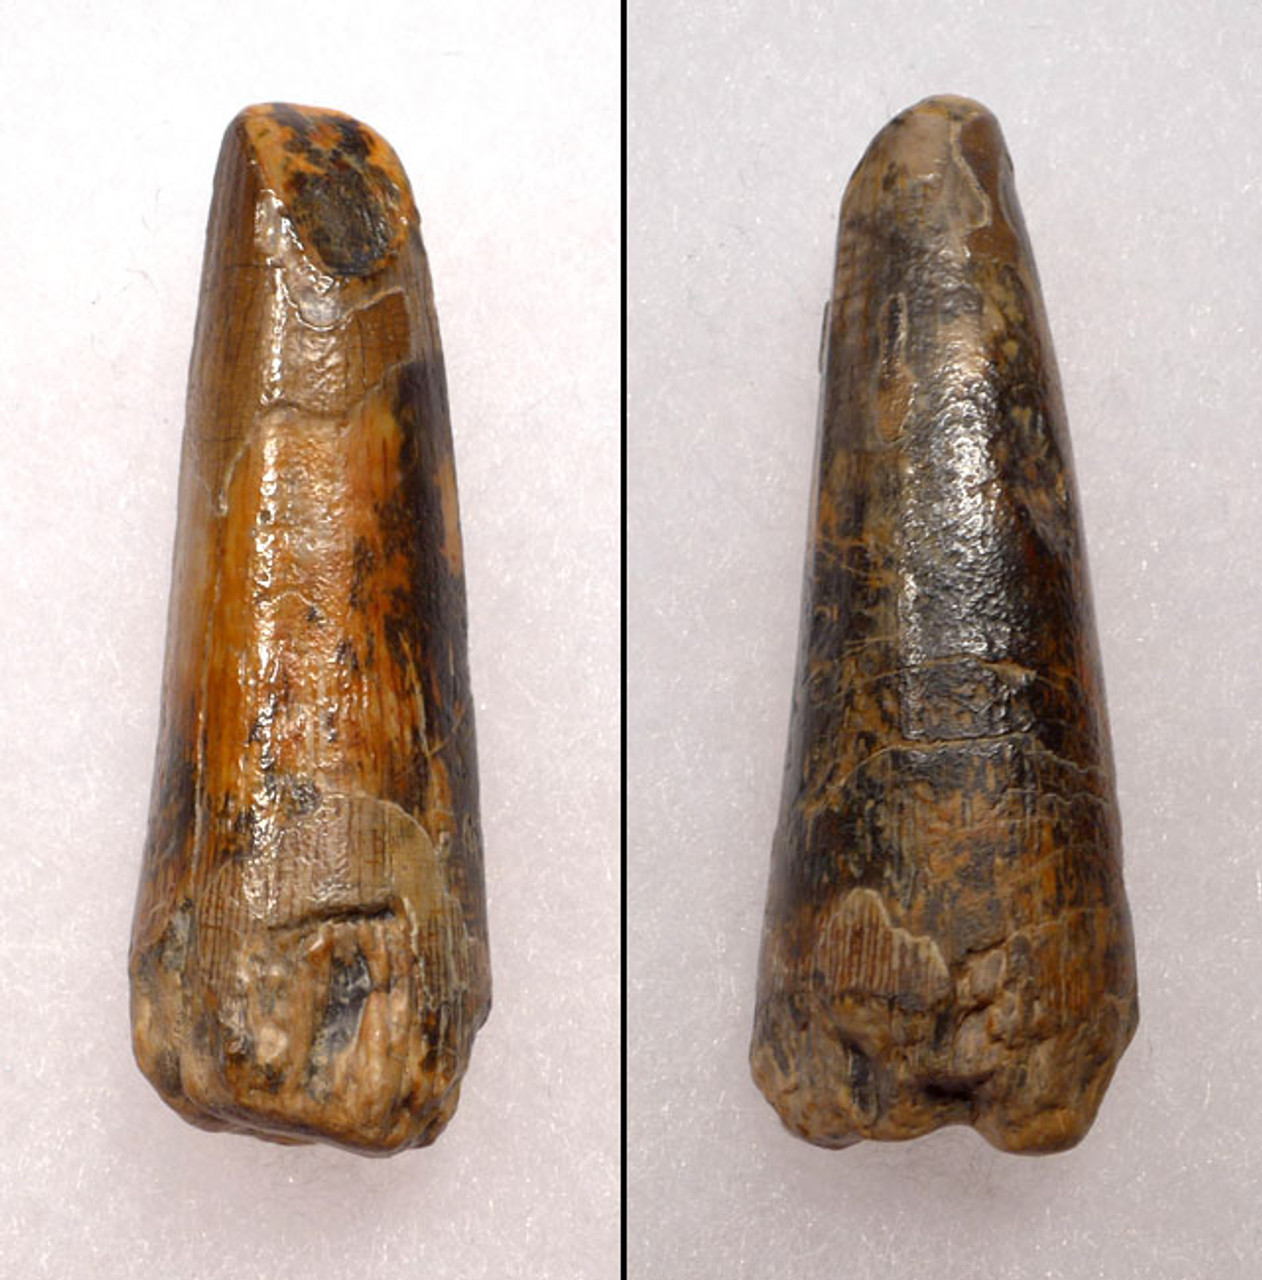 DT30-003 - SUCHOMIMUS TENERENSIS DINOSAUR TOOTH FROM NIGER WITH CHOICE PRESERVATION